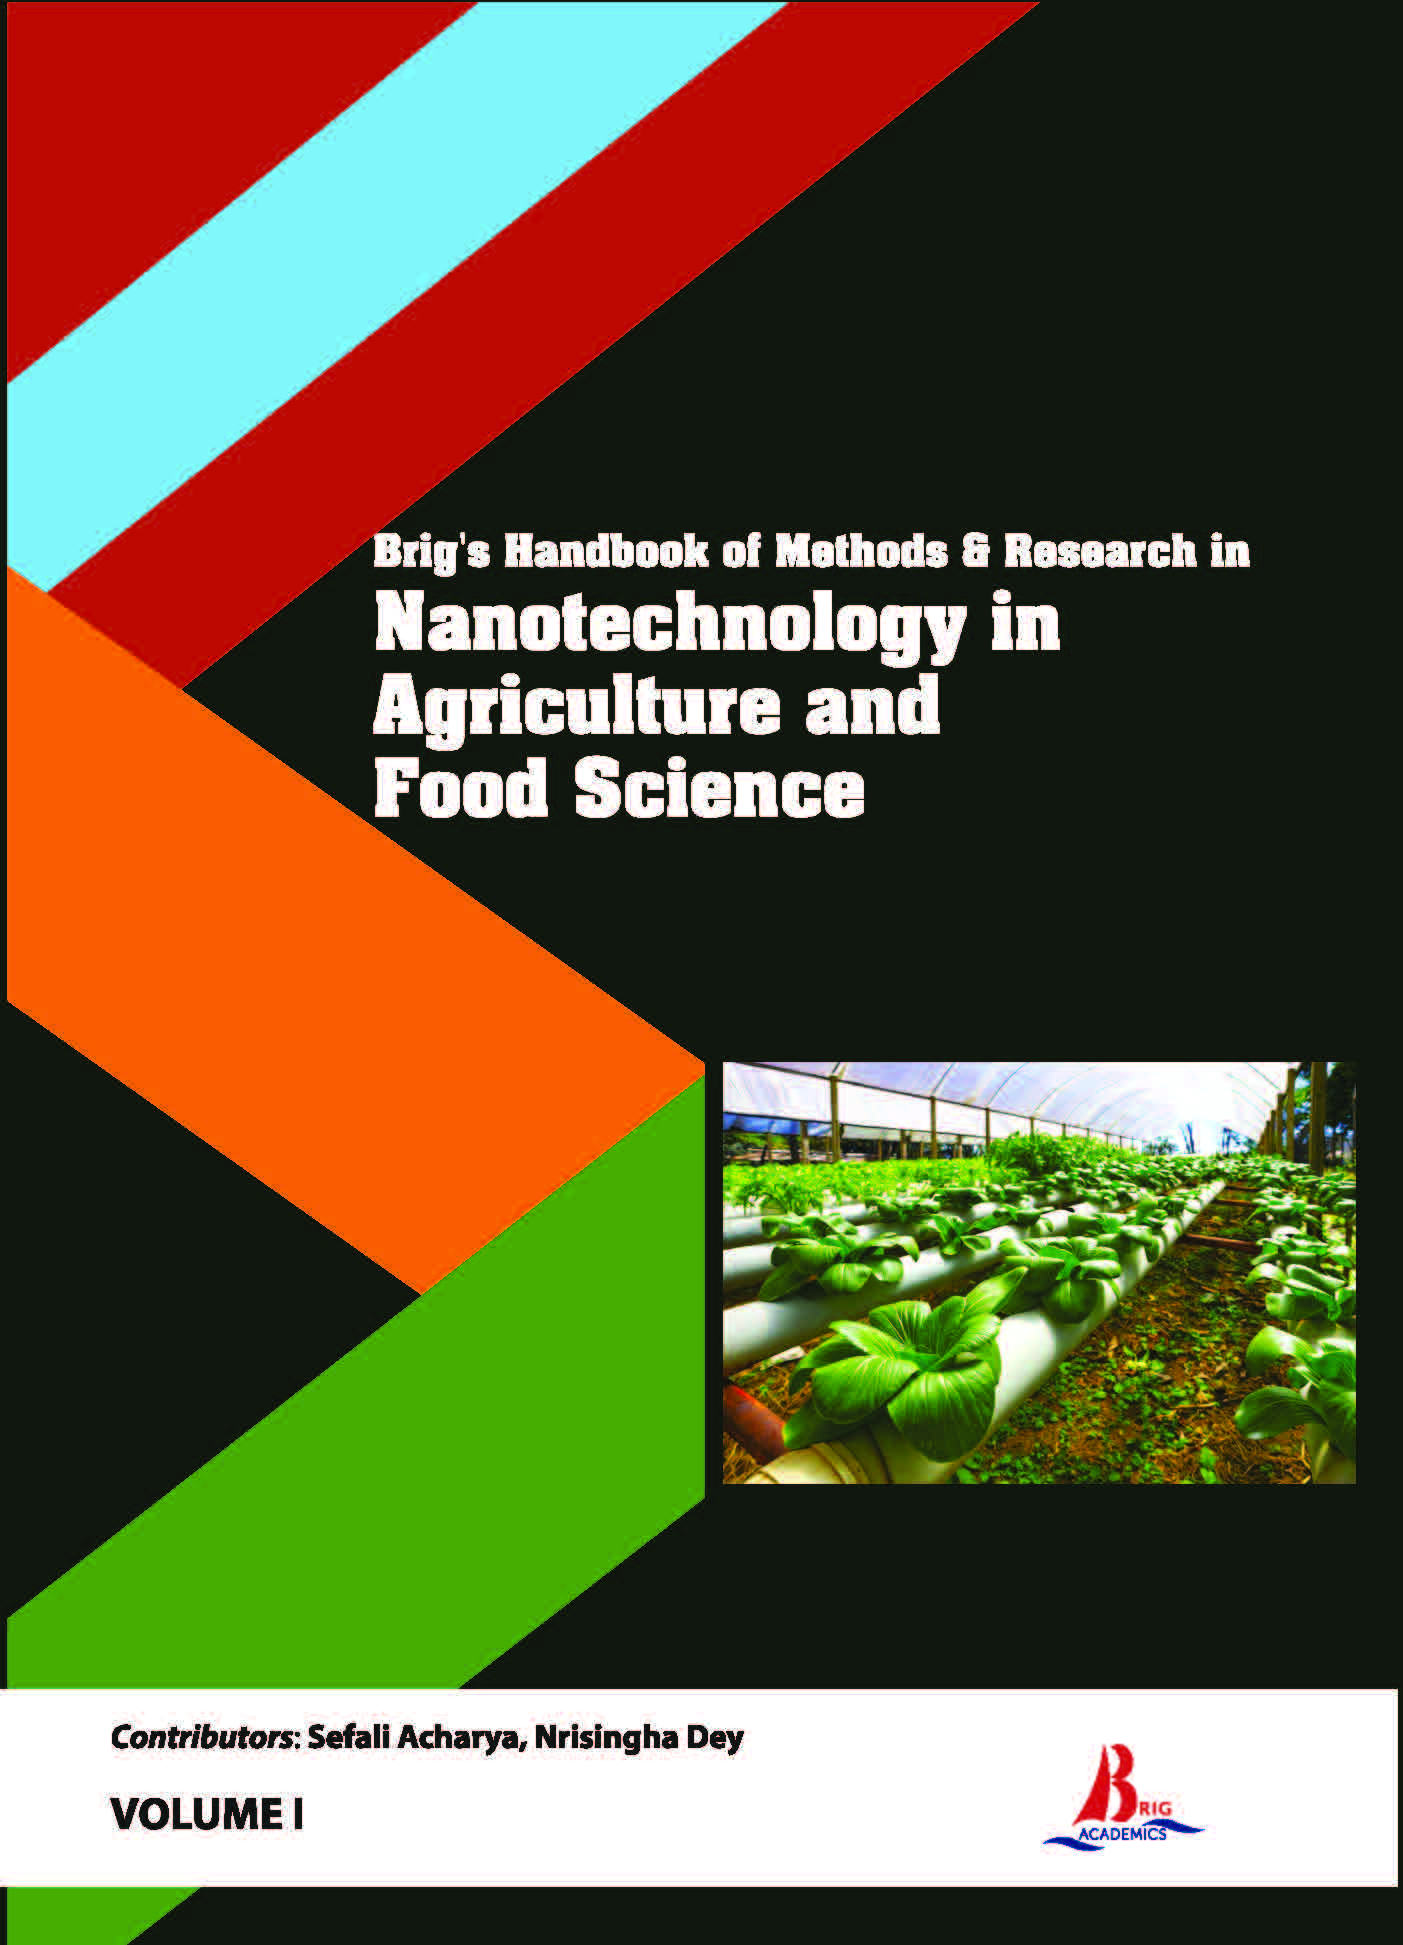 Brig's Handbook of Methods & Research in Nanotechnology in Agriculture and Food Science